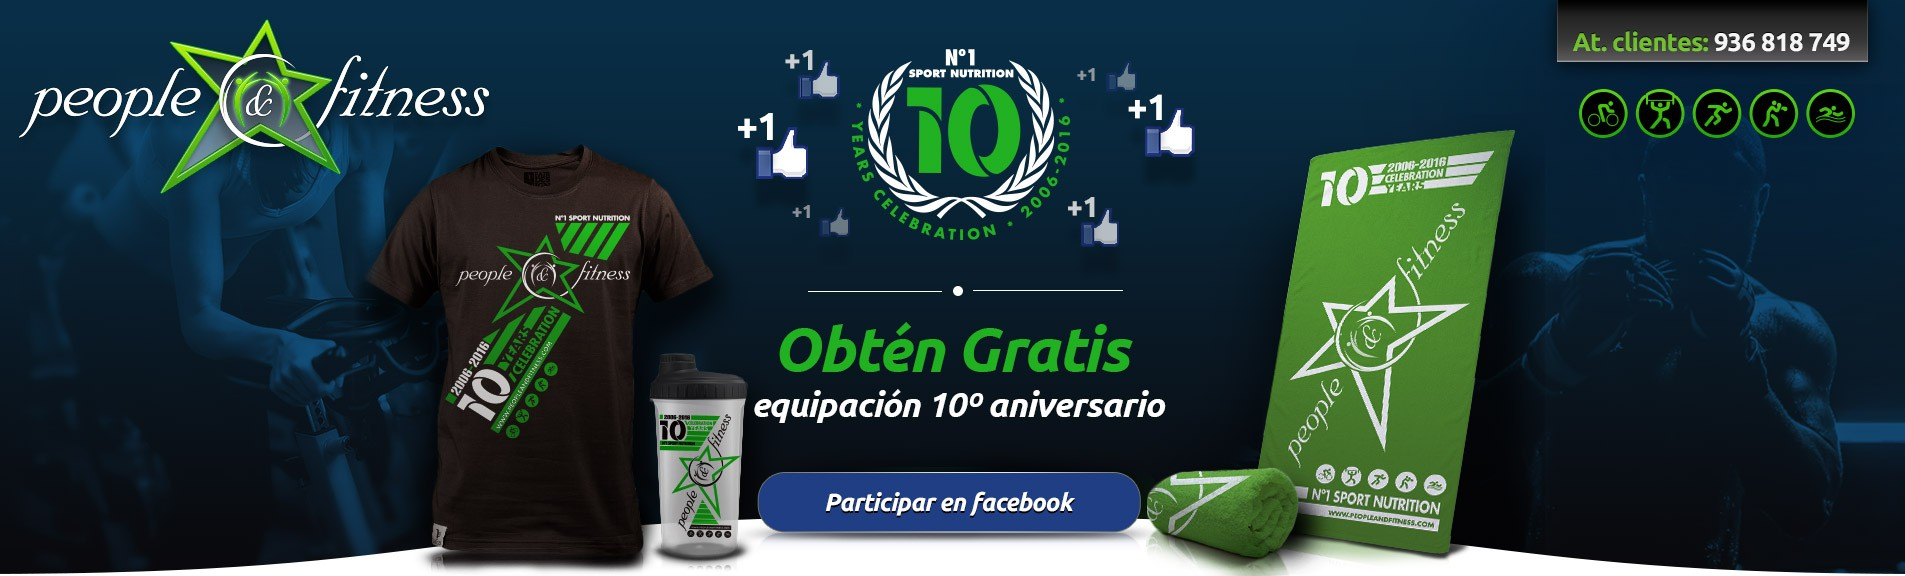 Campaña facebook 10 aniversario people and fitness